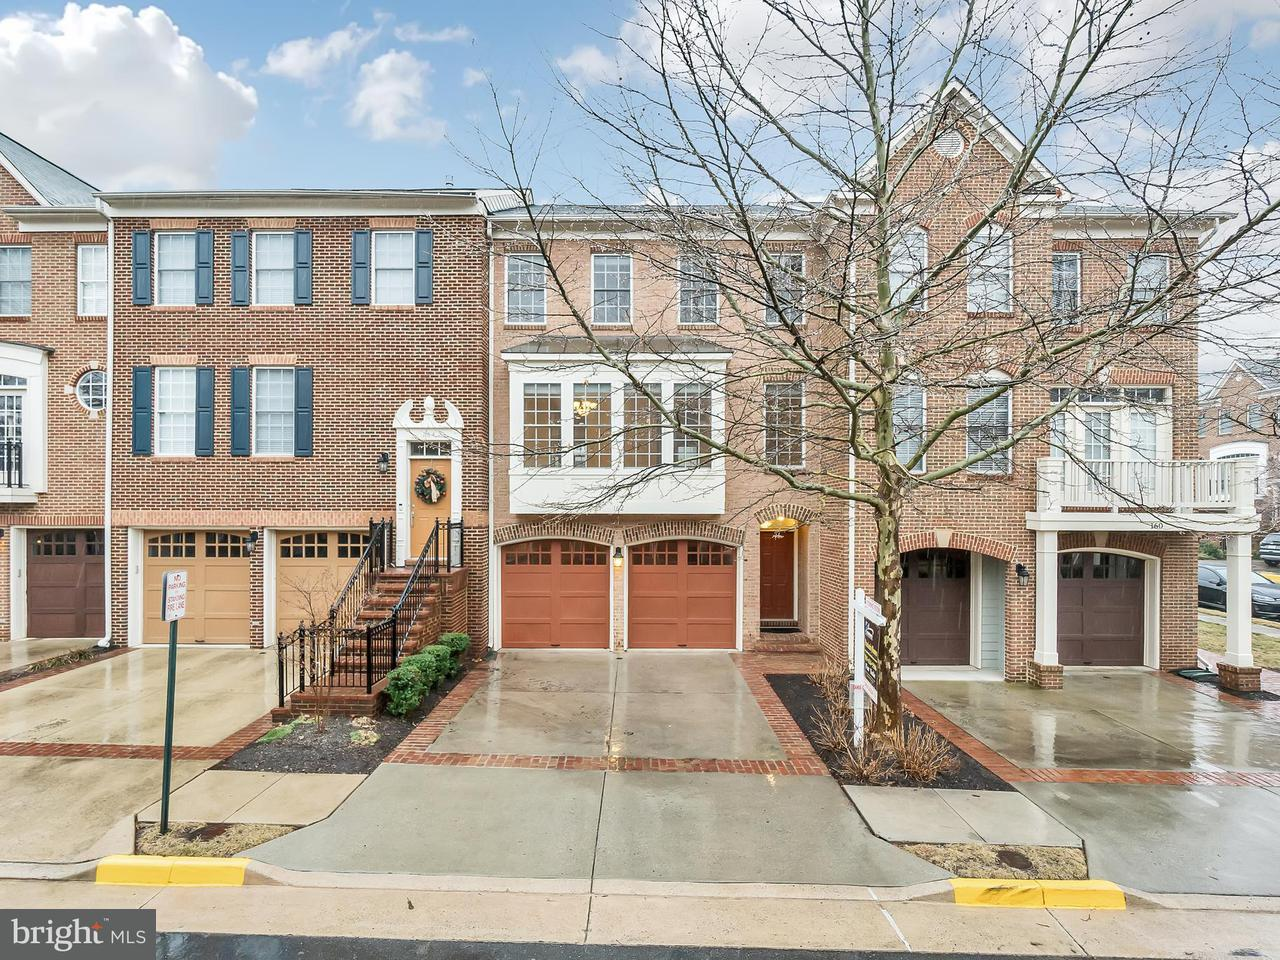 Townhouse for Sale at 162 Herndon Mill Circle 162 Herndon Mill Circle Herndon, Virginia 20170 United States